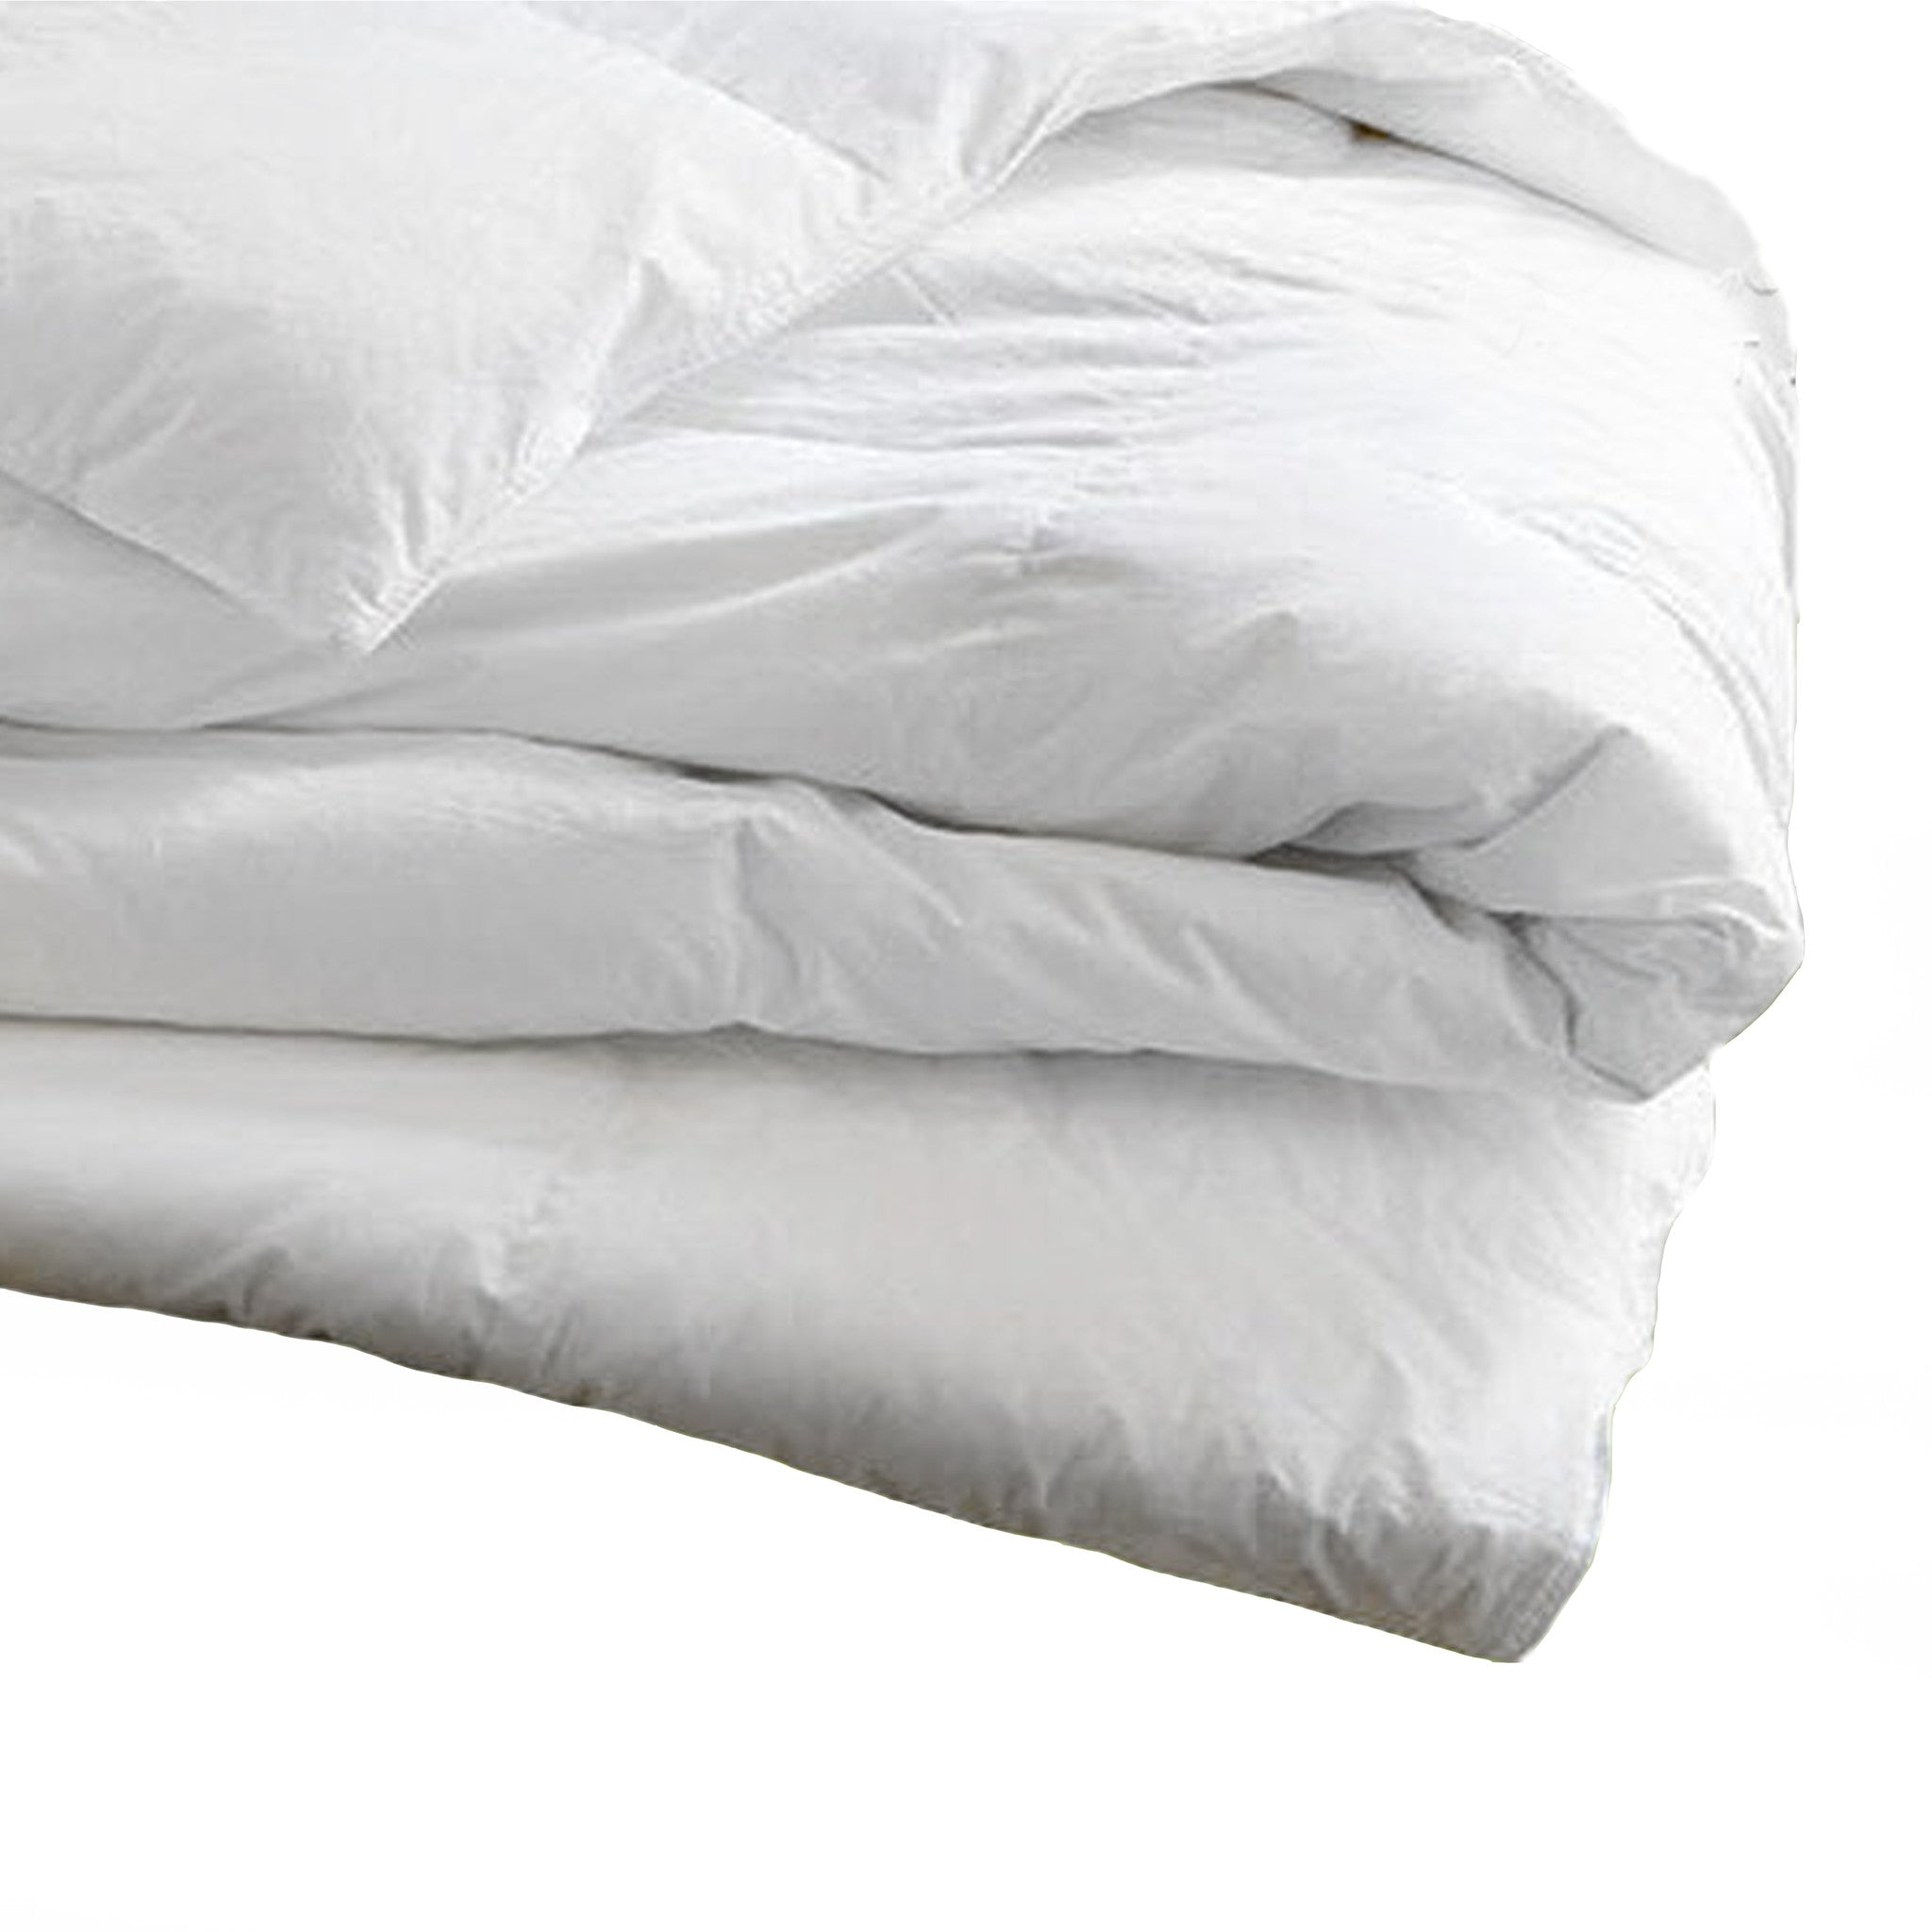 alternative bedding reviews bath product comforter cotton free today lightweight shipping down weight overstock premium light